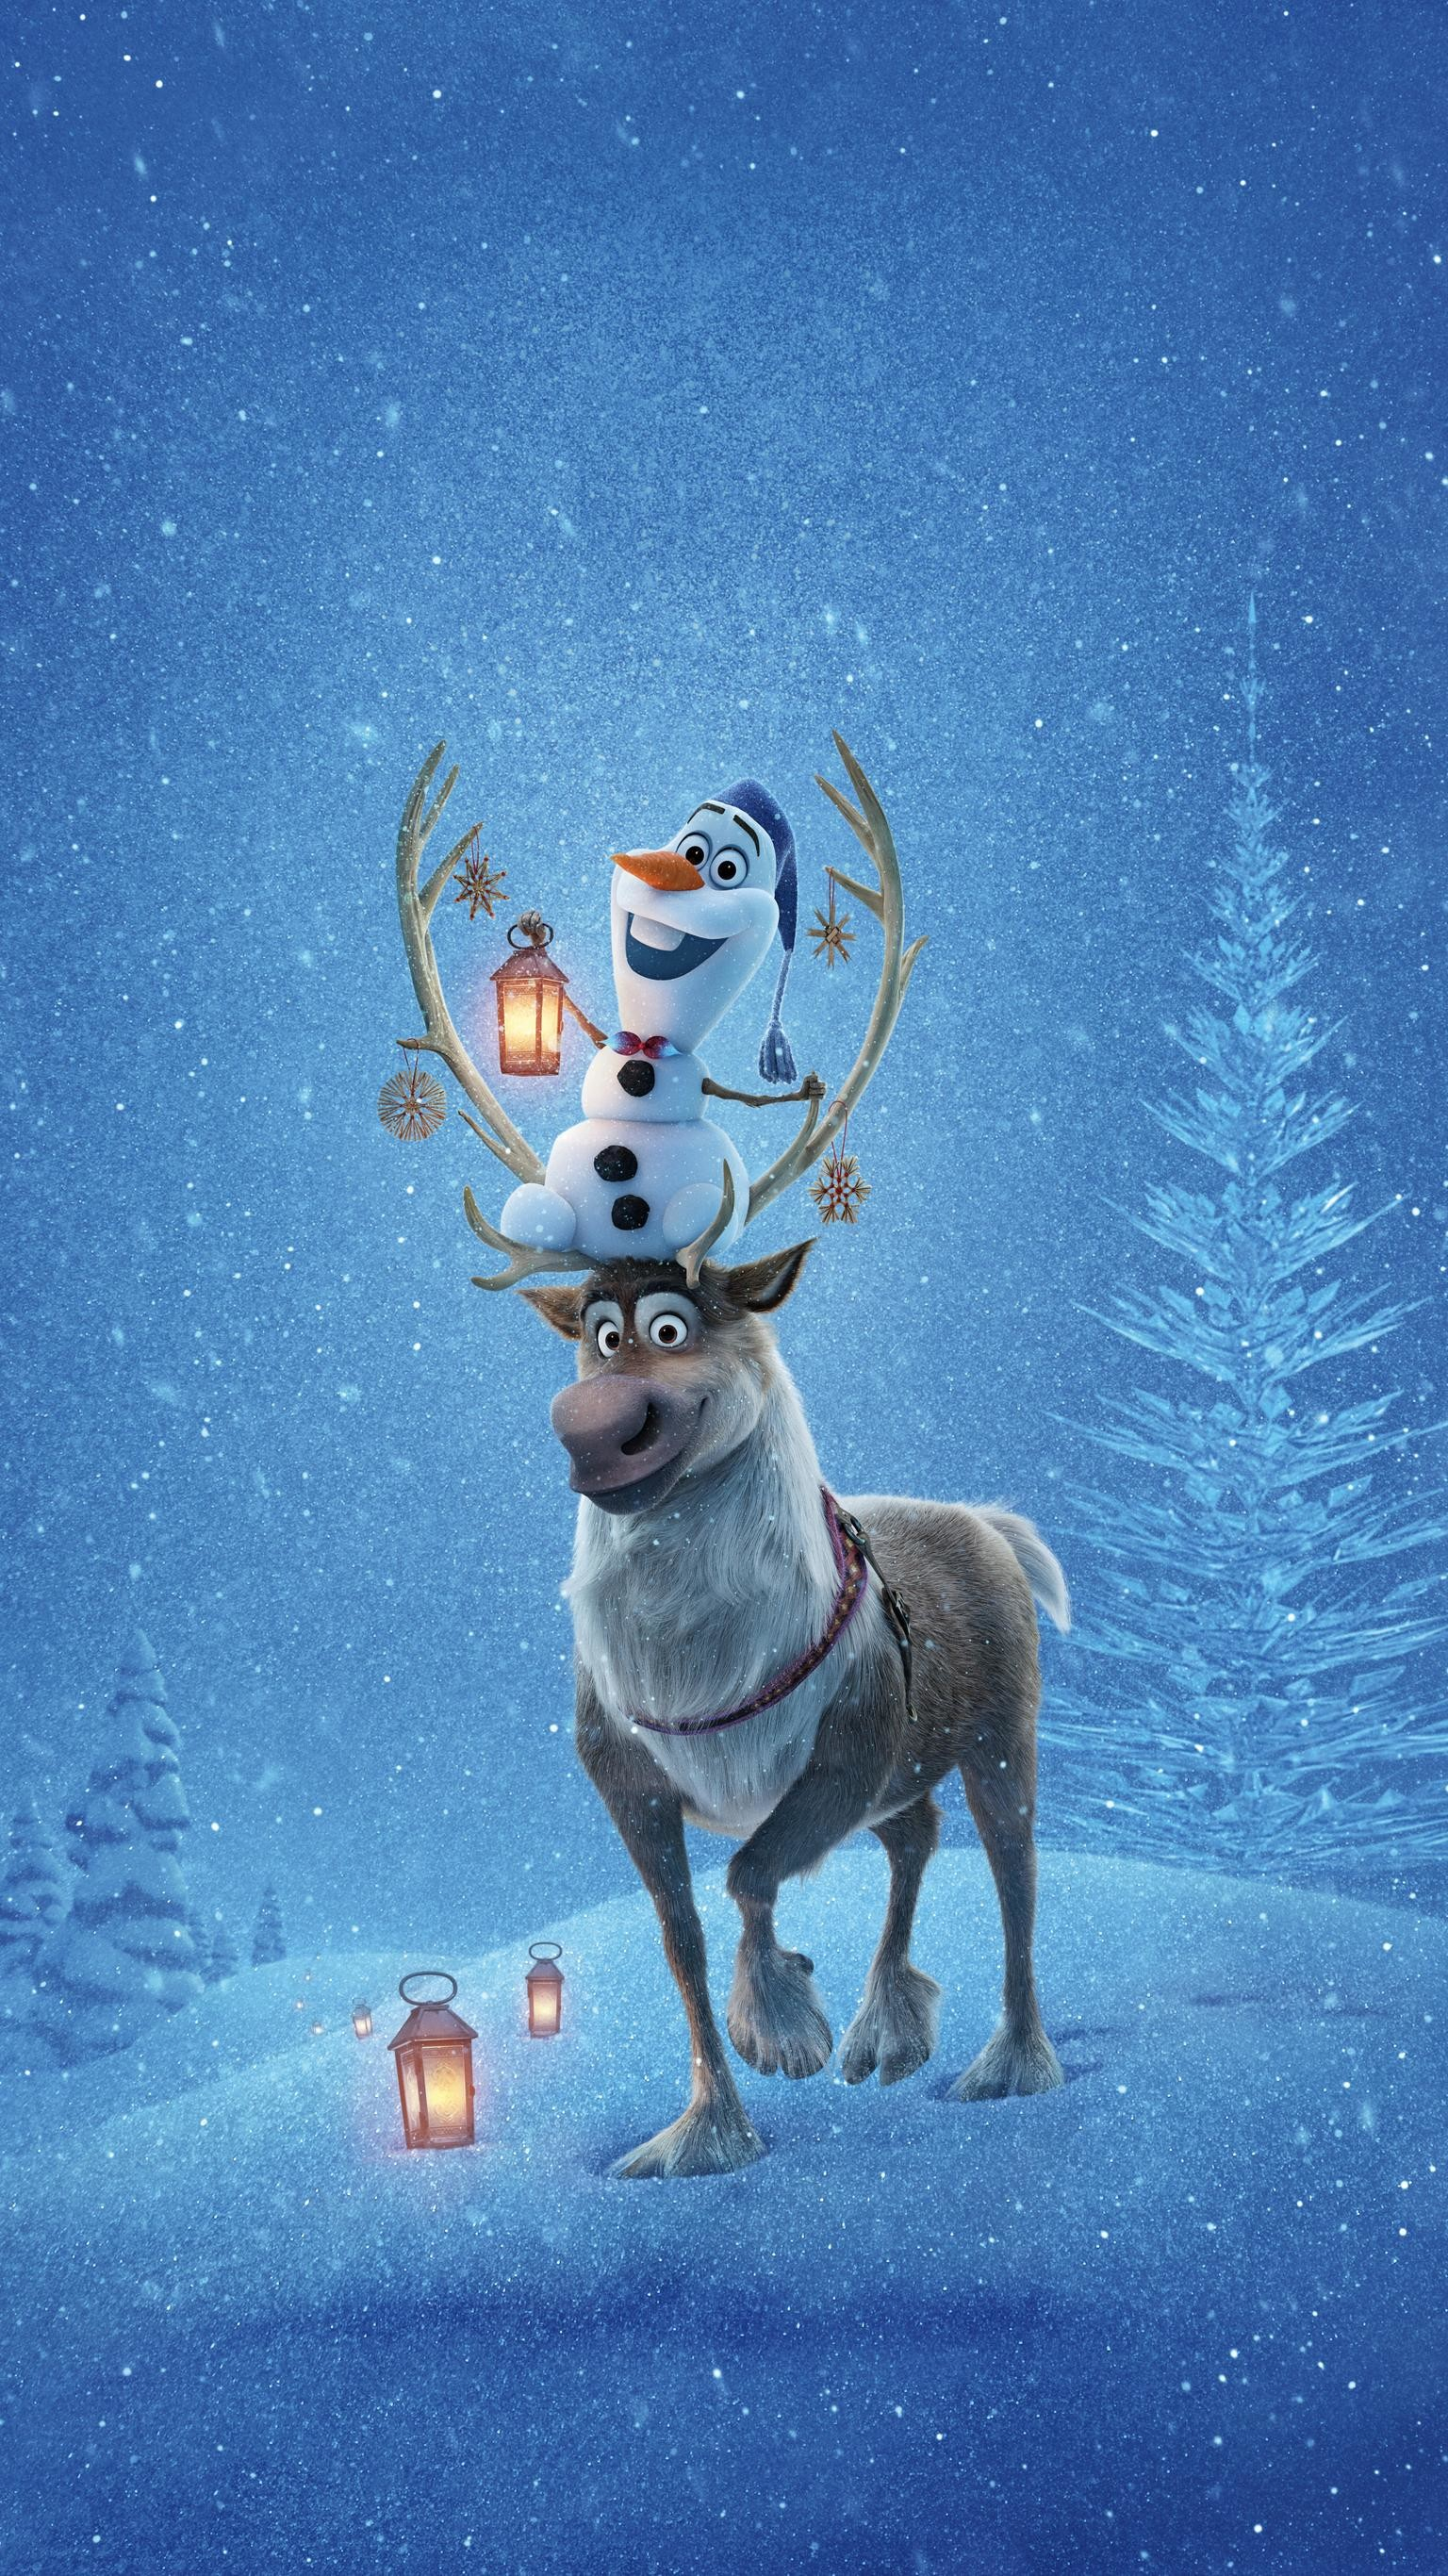 """Res: 1536x2732, Wallpaper for """"Olaf's Frozen Adventure"""" ..."""